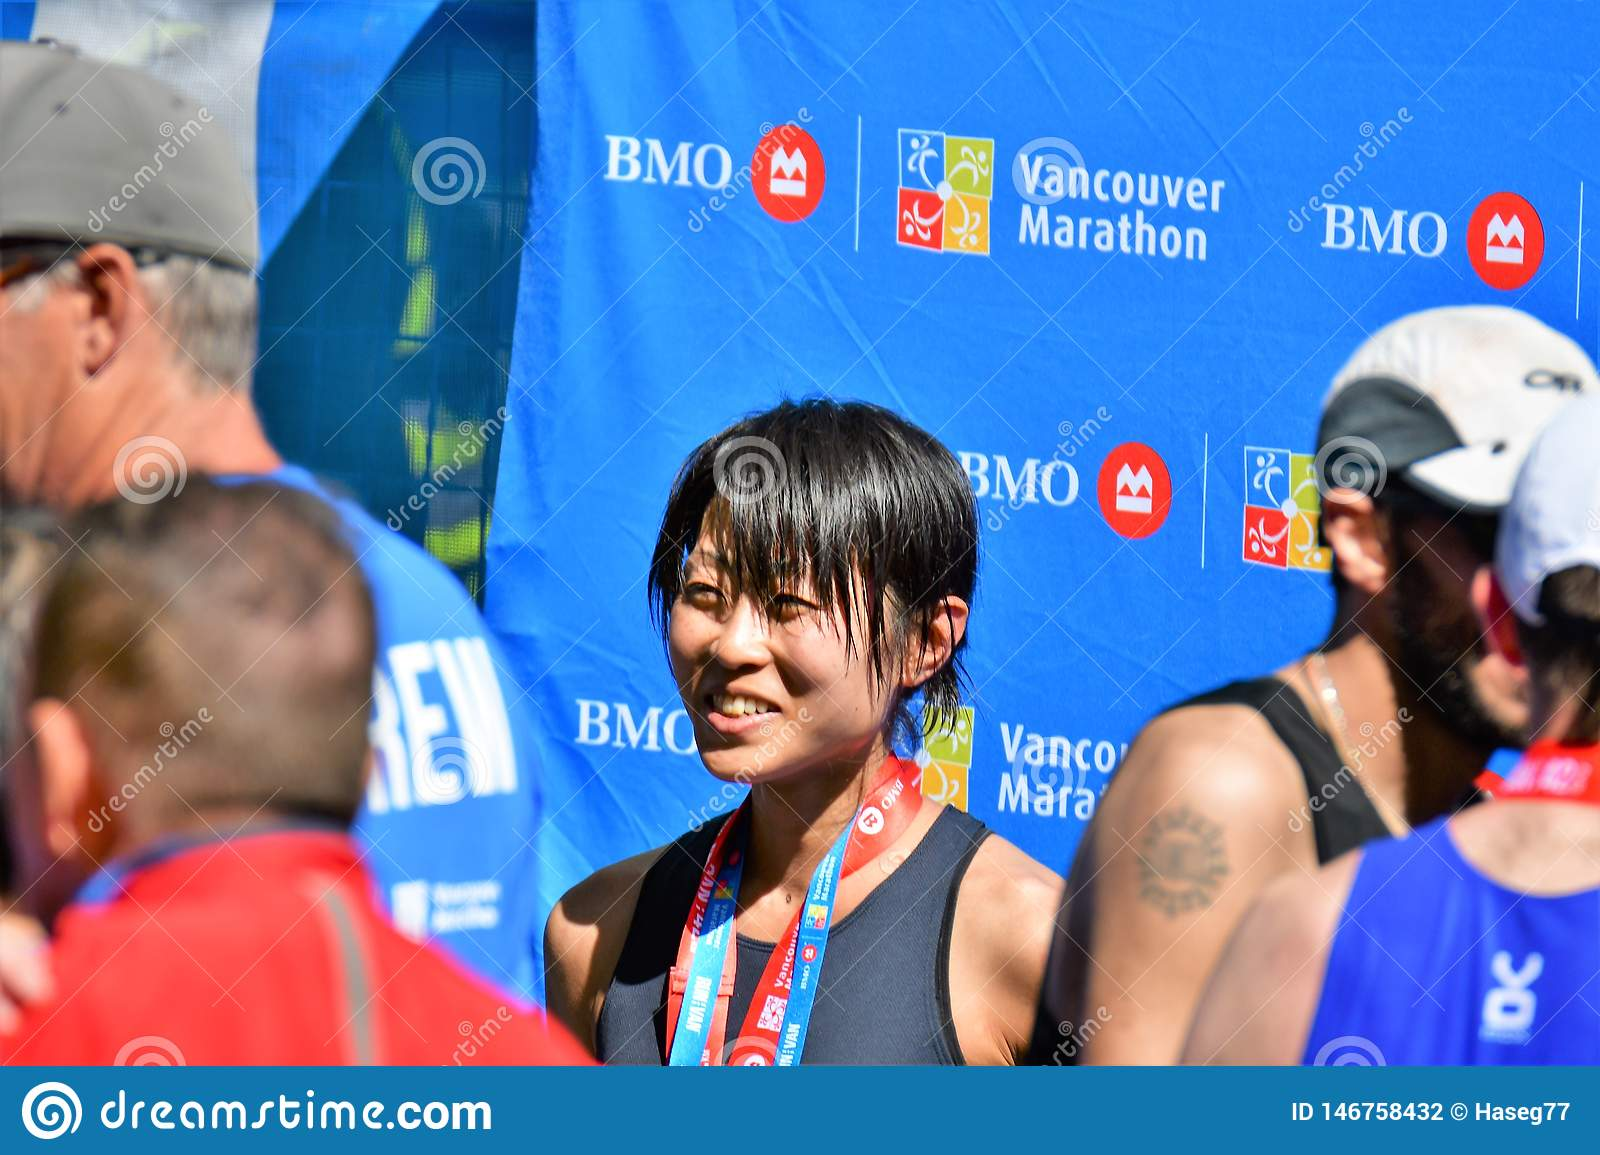 Ms. Yuko Mizuguchi won female 1st place at Vancouver maraton.